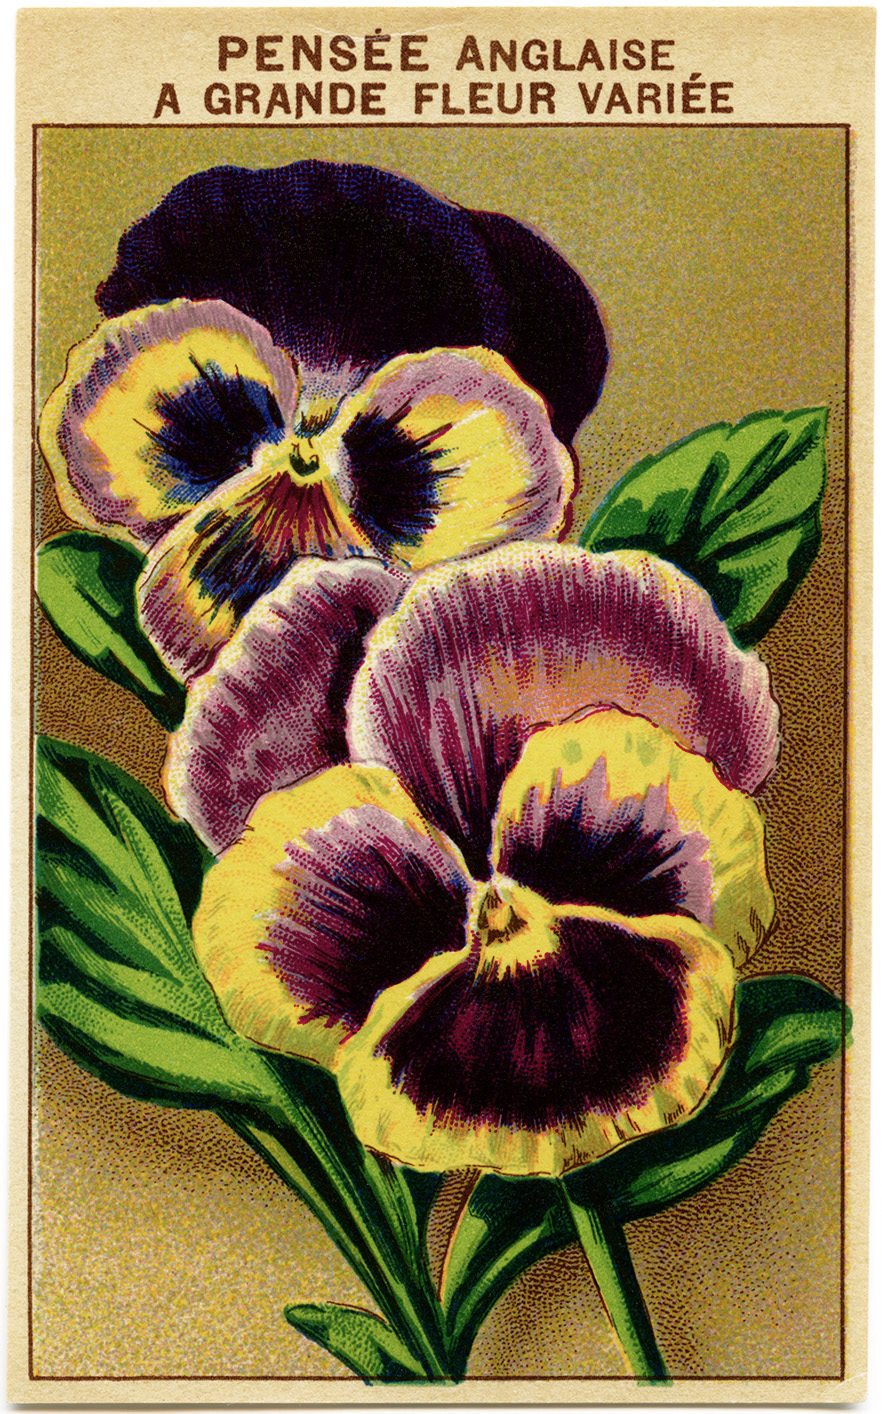 French seed packet, old fashioned seed package, vintage garden graphics, English pansy image, pensee anglaise, vintage pansy clip art